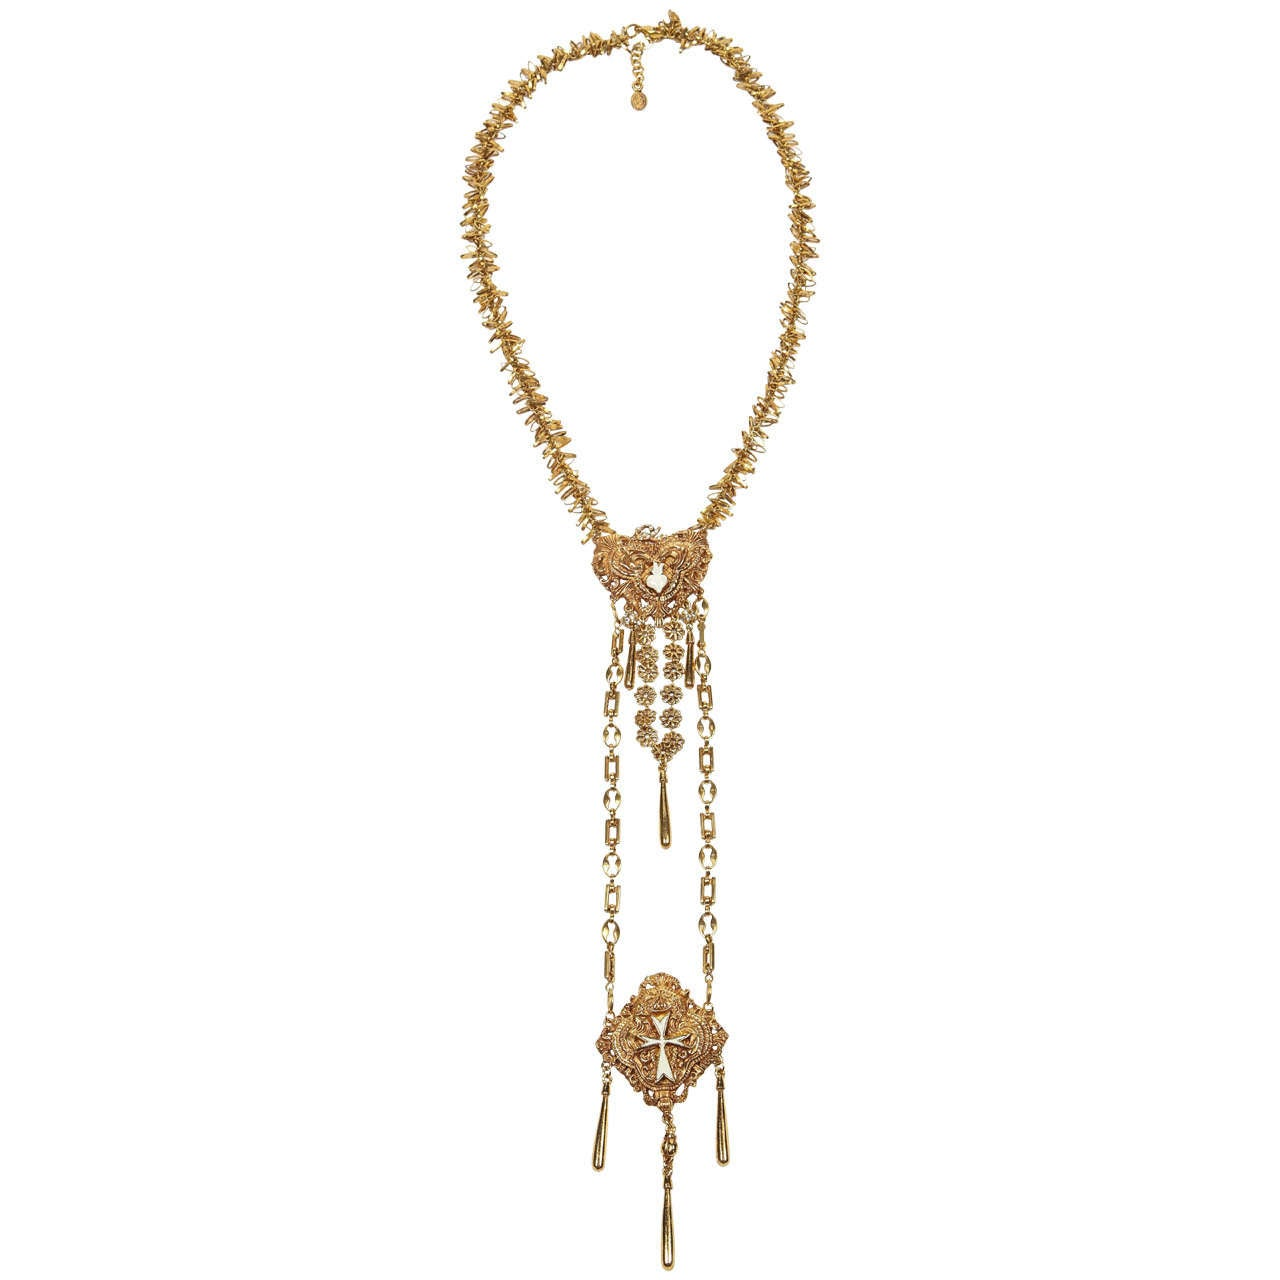 A striking double drop necklace by Christian Lacroix of gilt metal, enamel details in each pendant and rhinestone accents, including the CL at the top of the first pendant. Nicely detailed with various types of chain, including a fringed chain at